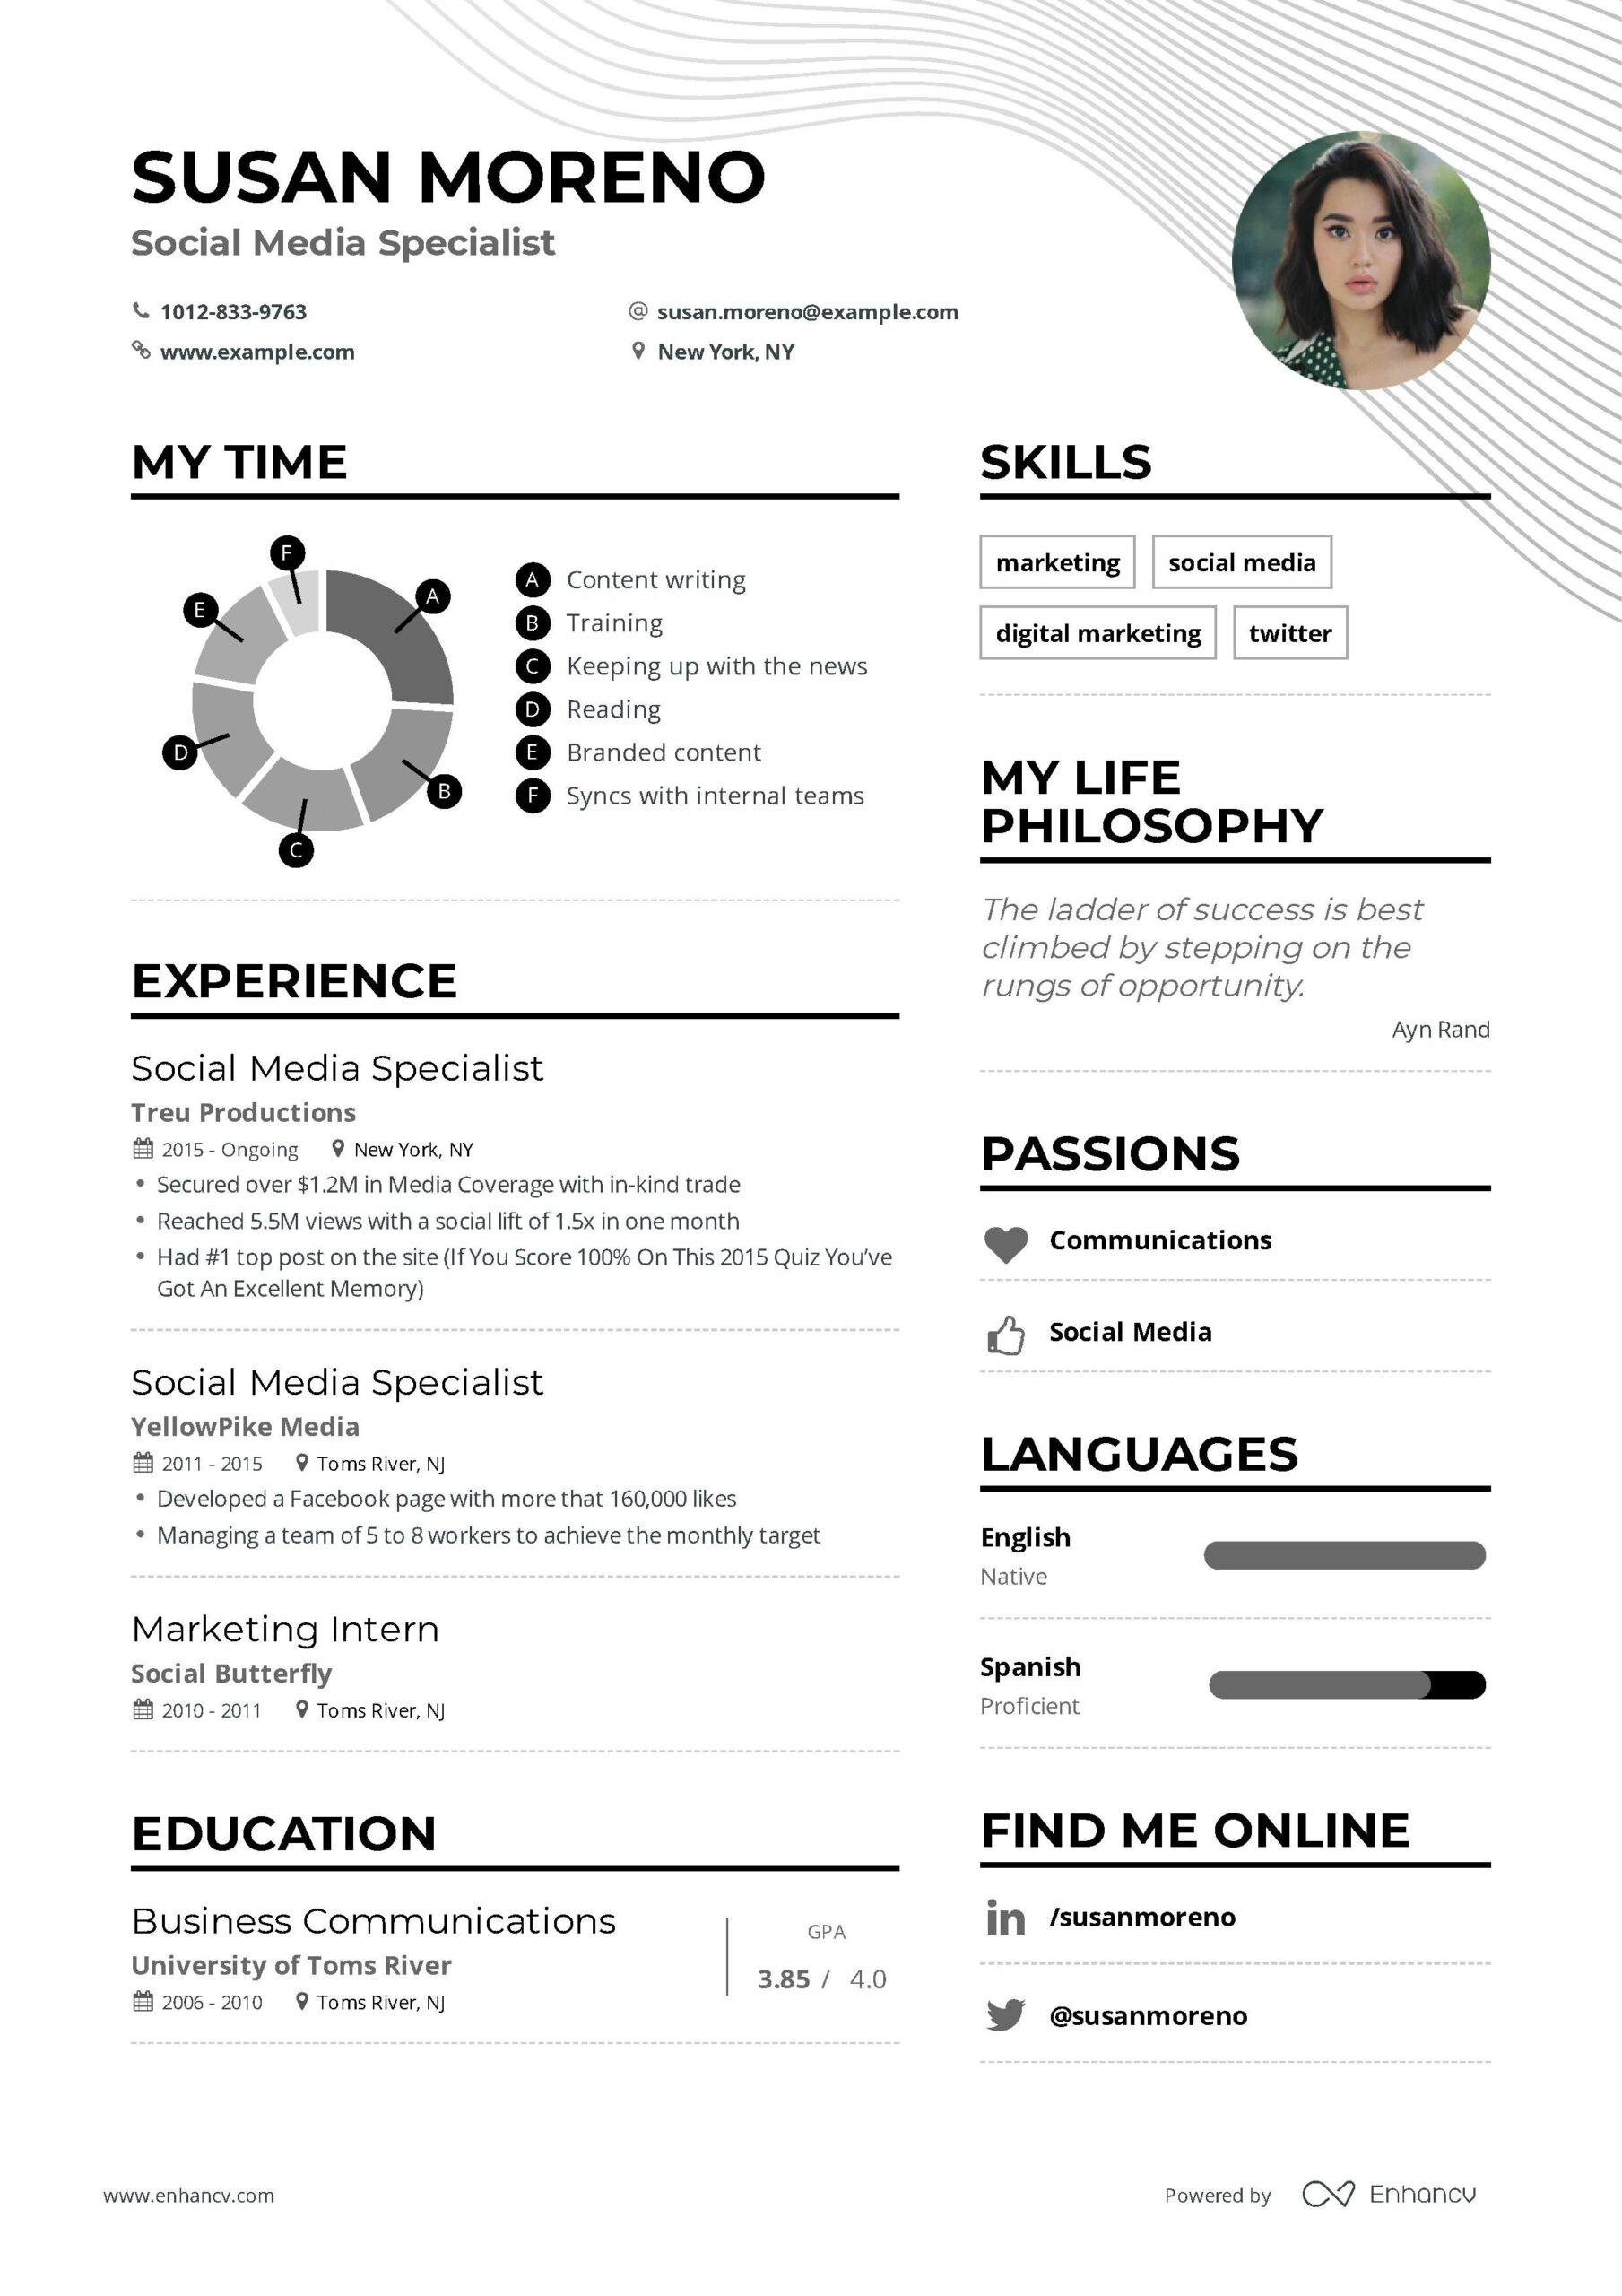 social media specialist resume example and guide for examples marketing studies Resume Social Media Resume Examples